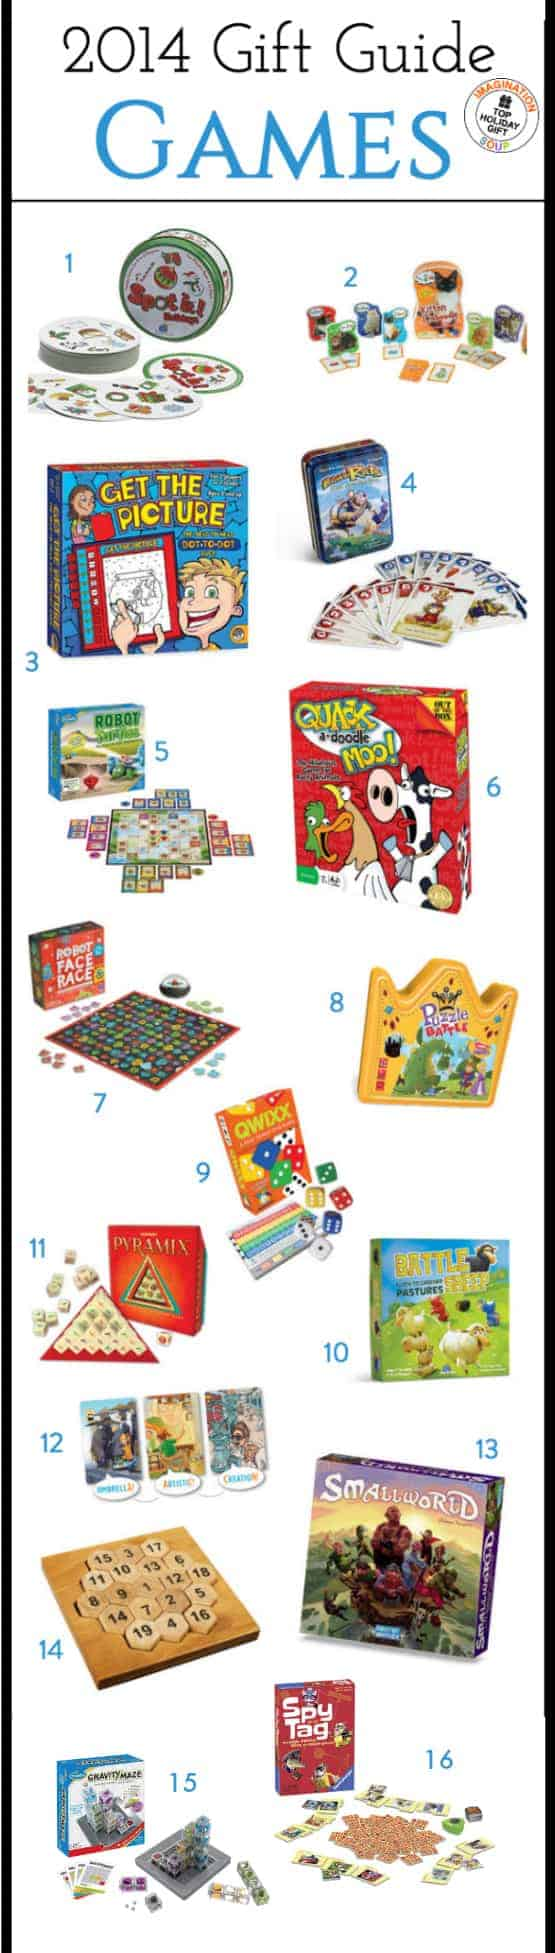 2014 Gift Guide Learning Games